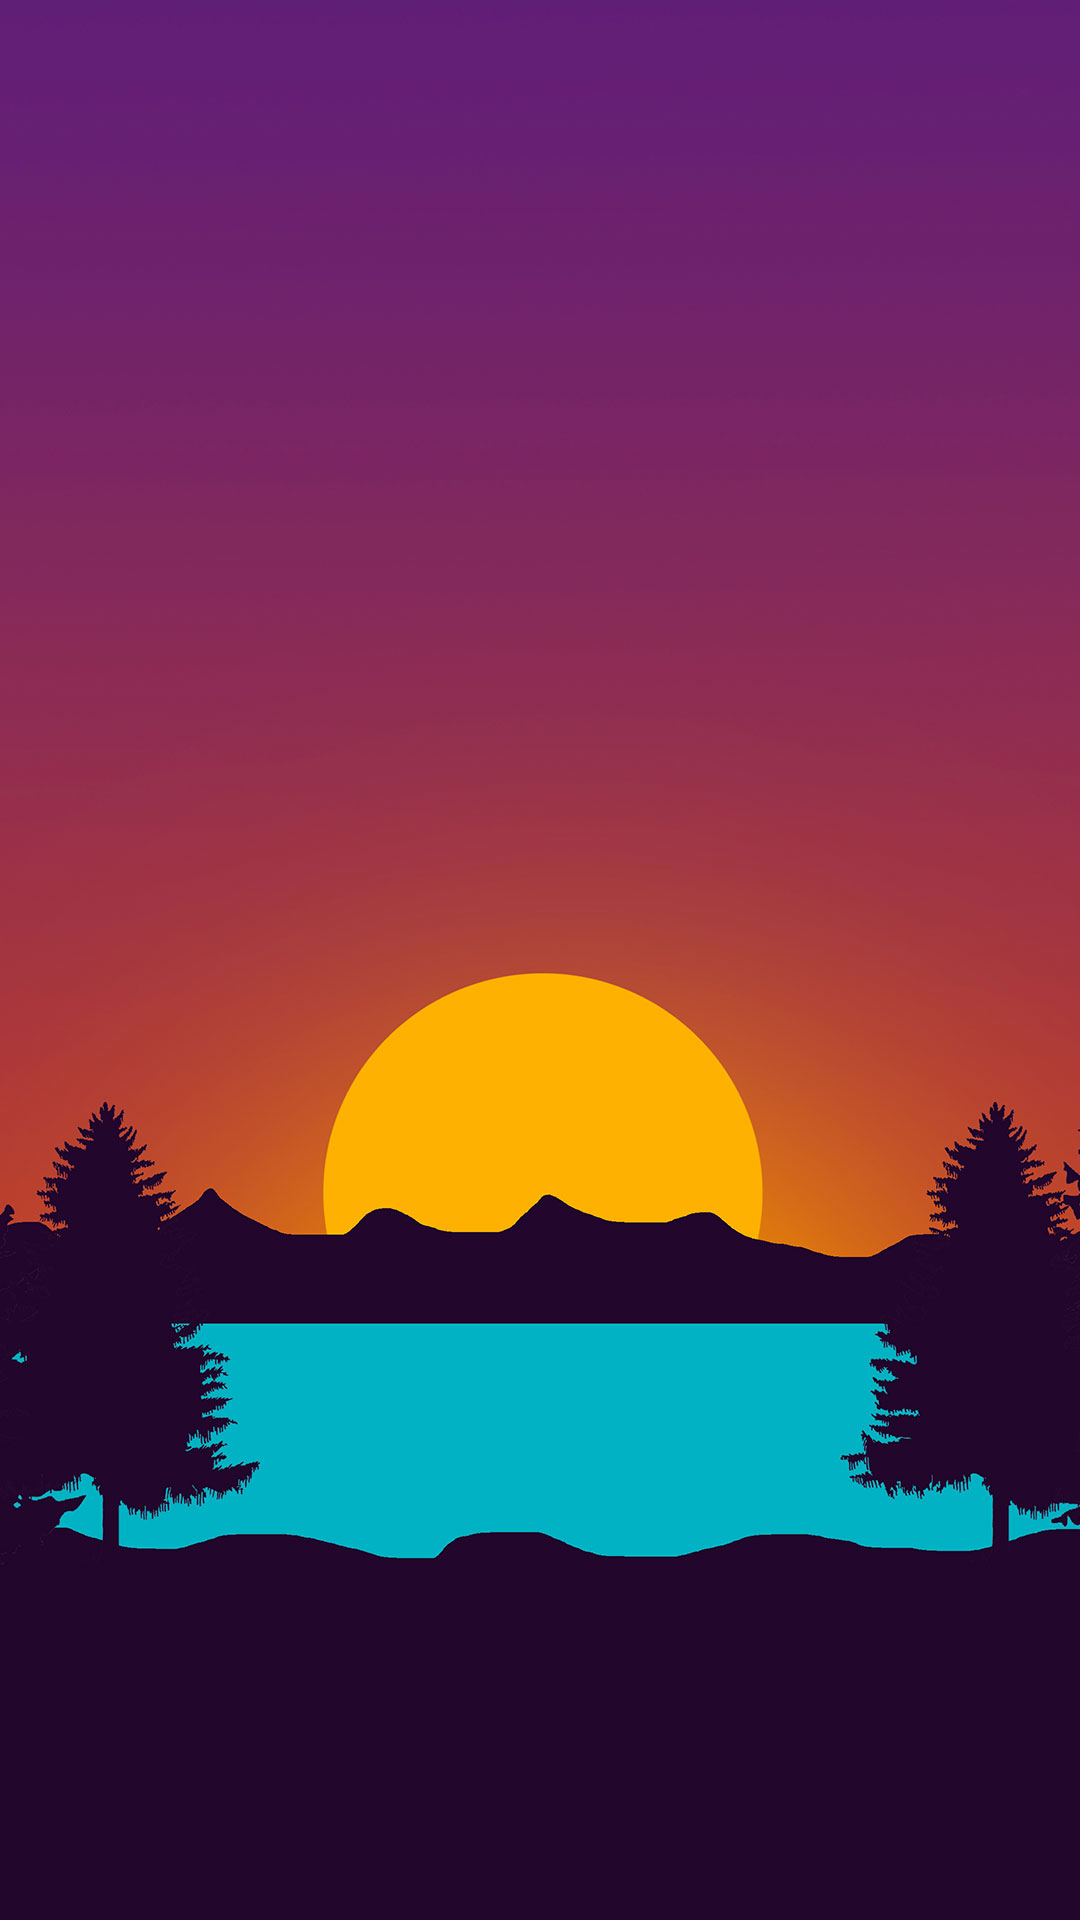 iPhone wallpaper drawing sunset Drawing